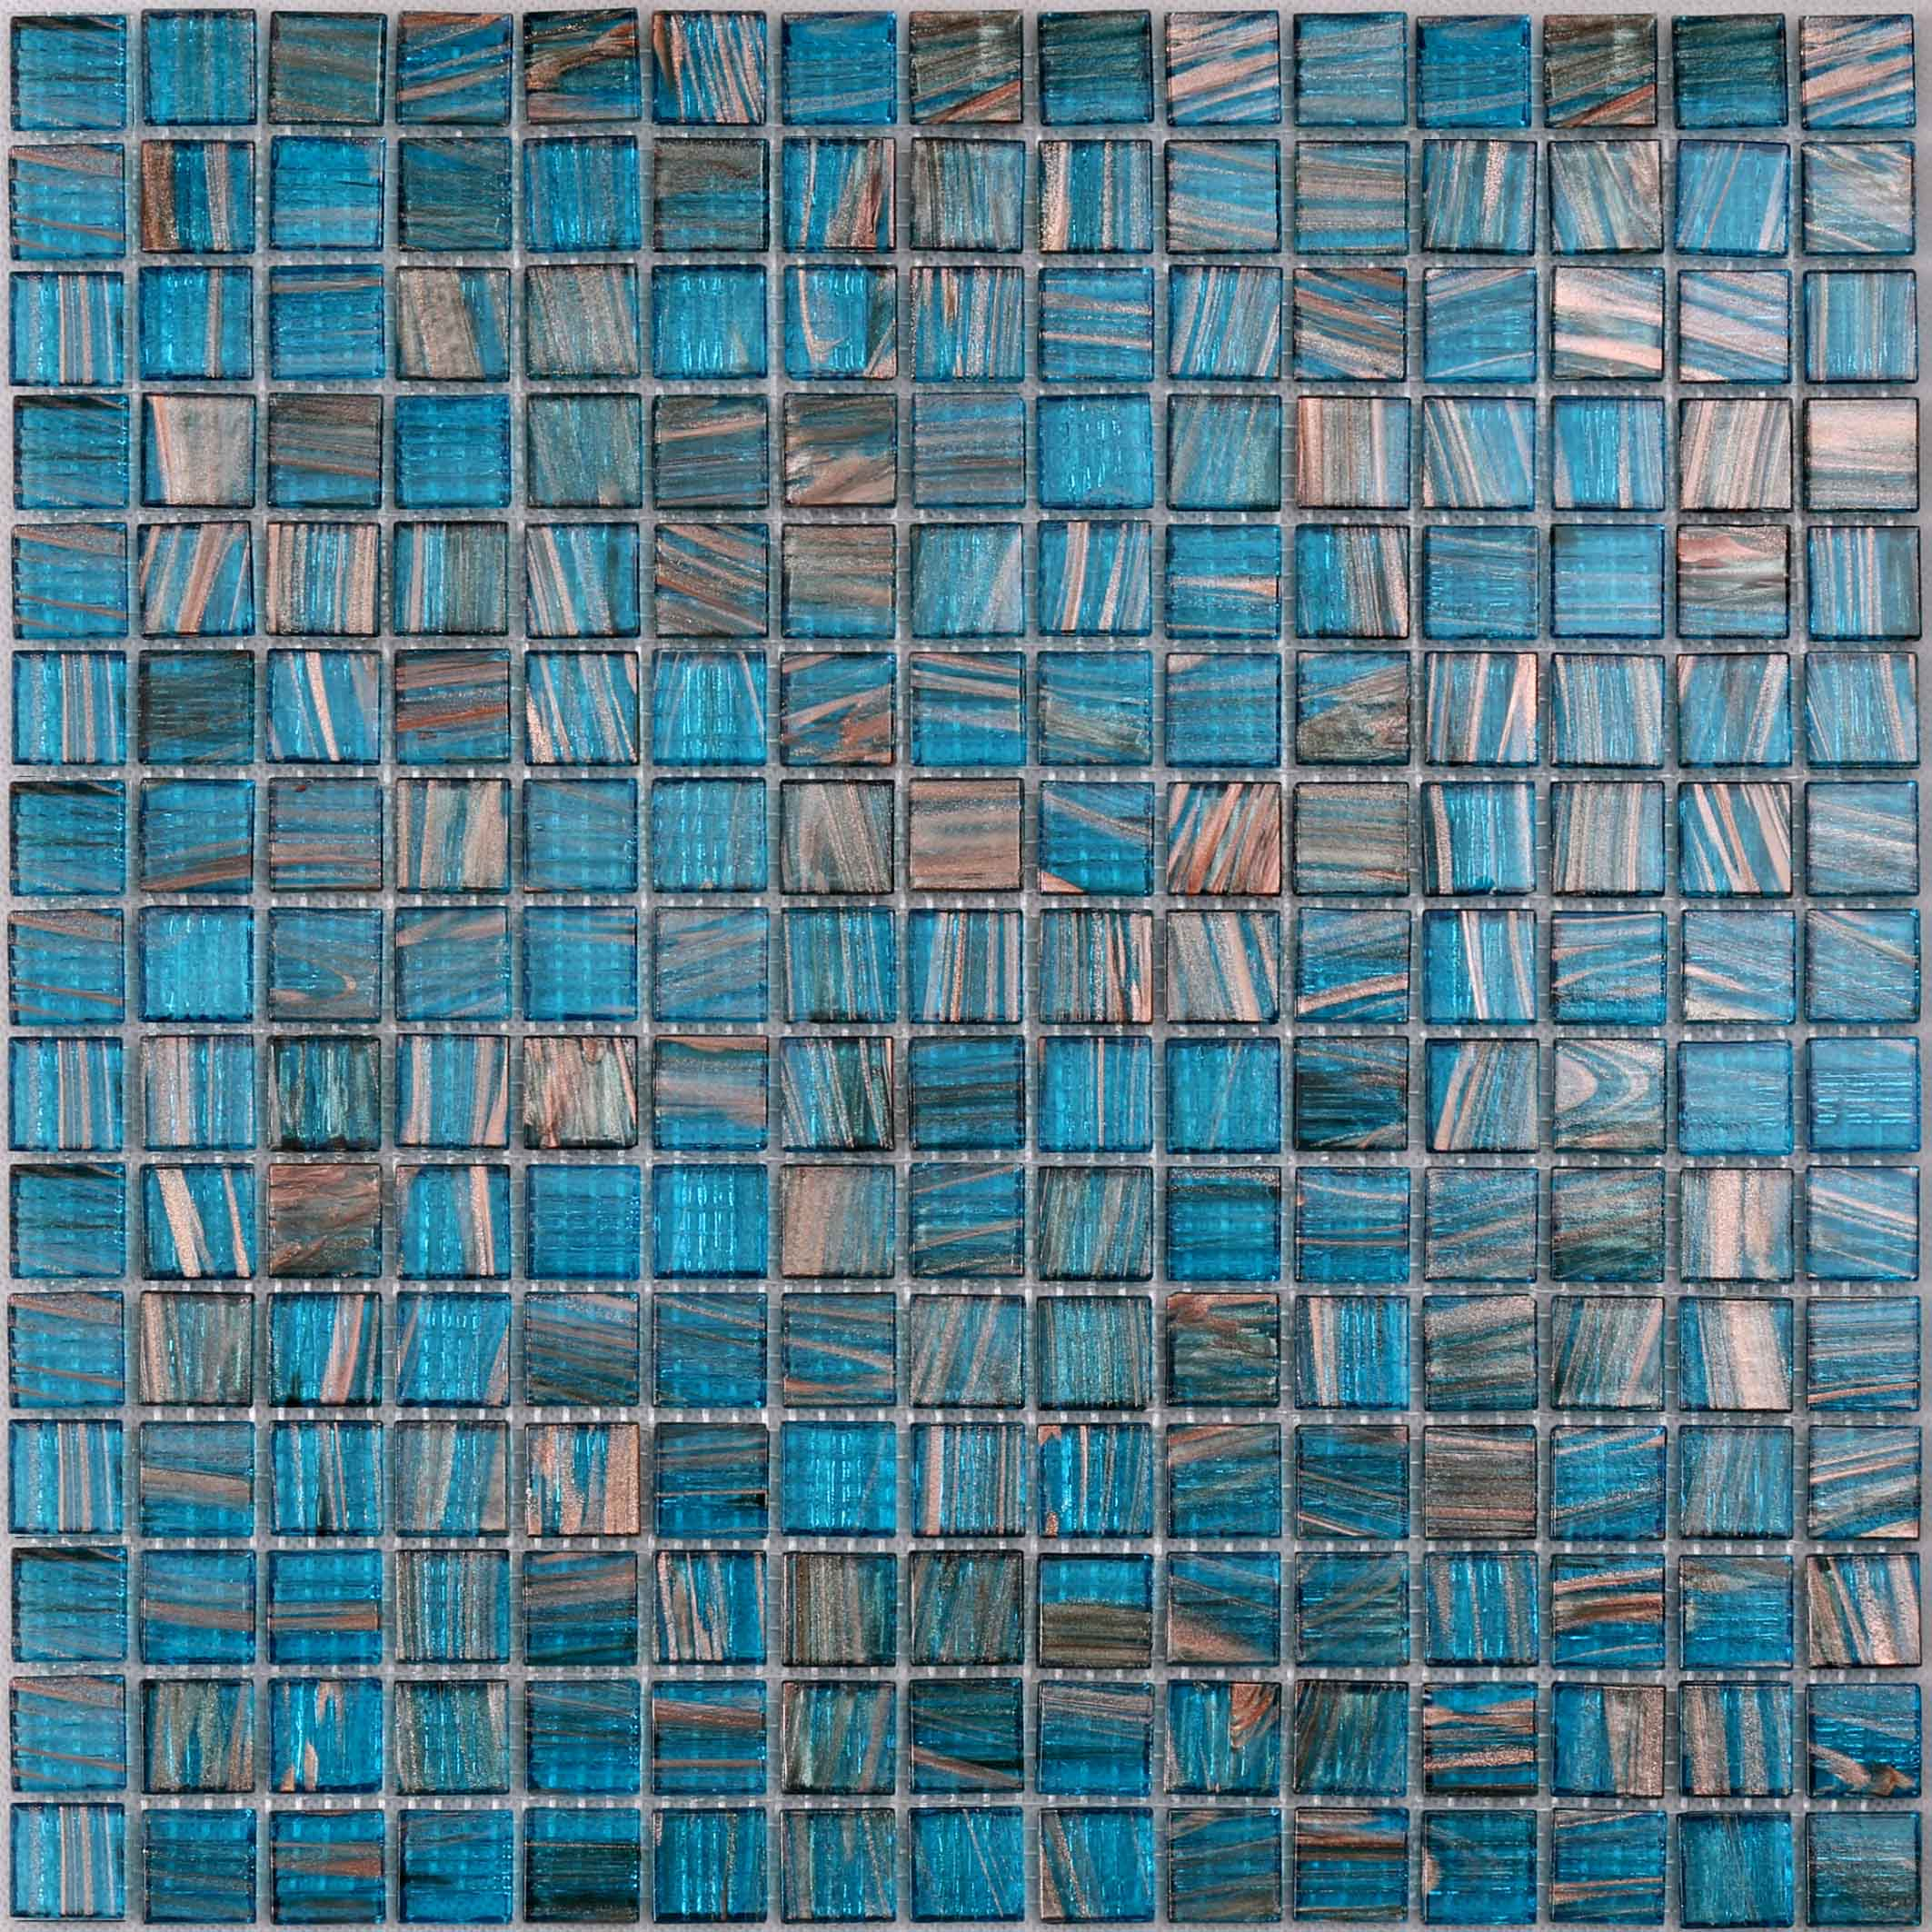 Heng Xing-Custom Pool Tile Manufacturer, Blue Glass Tile Backsplash | Pool Mosaic Tile